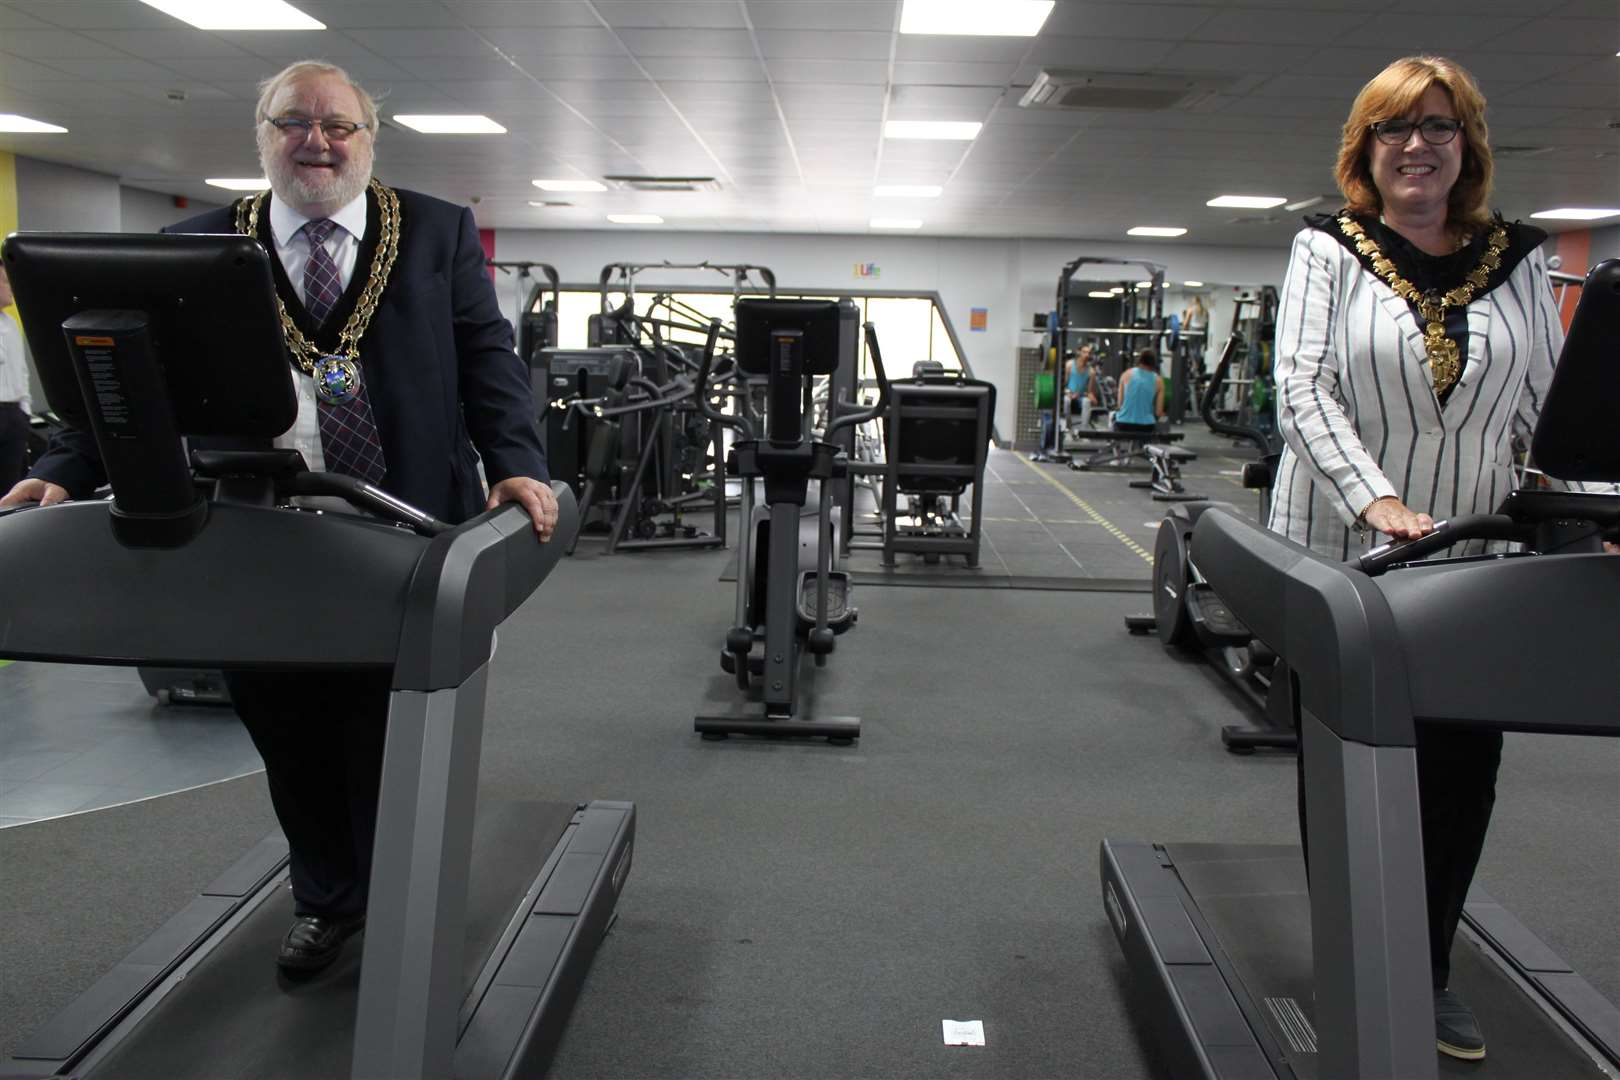 Uttlesford District Council chairman Cllr Martin Foley and Saffron Walden mayor Heather Asker get to work on the treadmills (39850304)